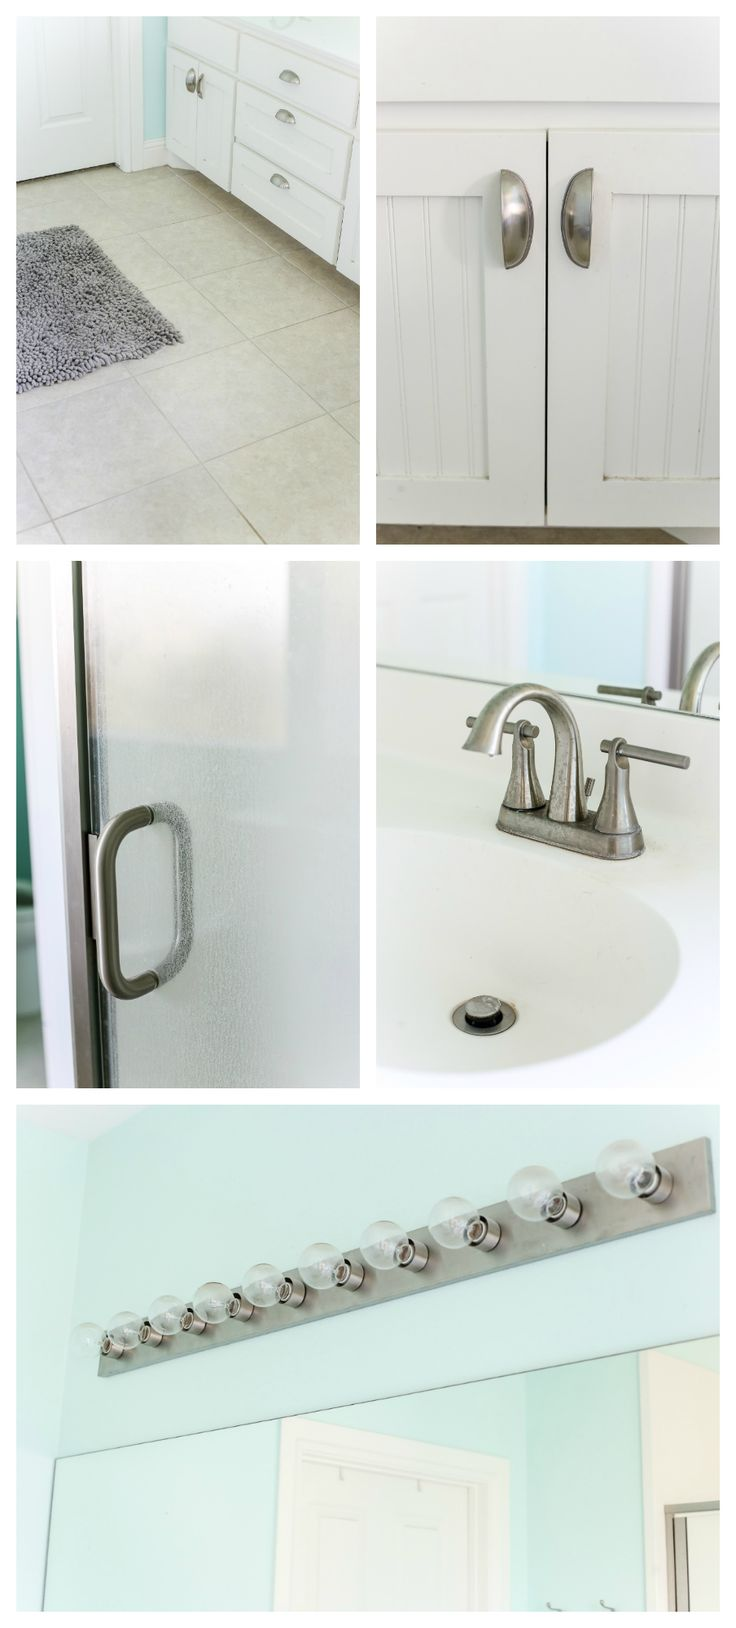 Lowe's Spring Makeover Bathroom Reveal | blesserhouse.com - A team of 6 DIYers take on a bathroom makeover in 48 hours to transform a plain, builder grade space to give it character and modern farmhouse charm.